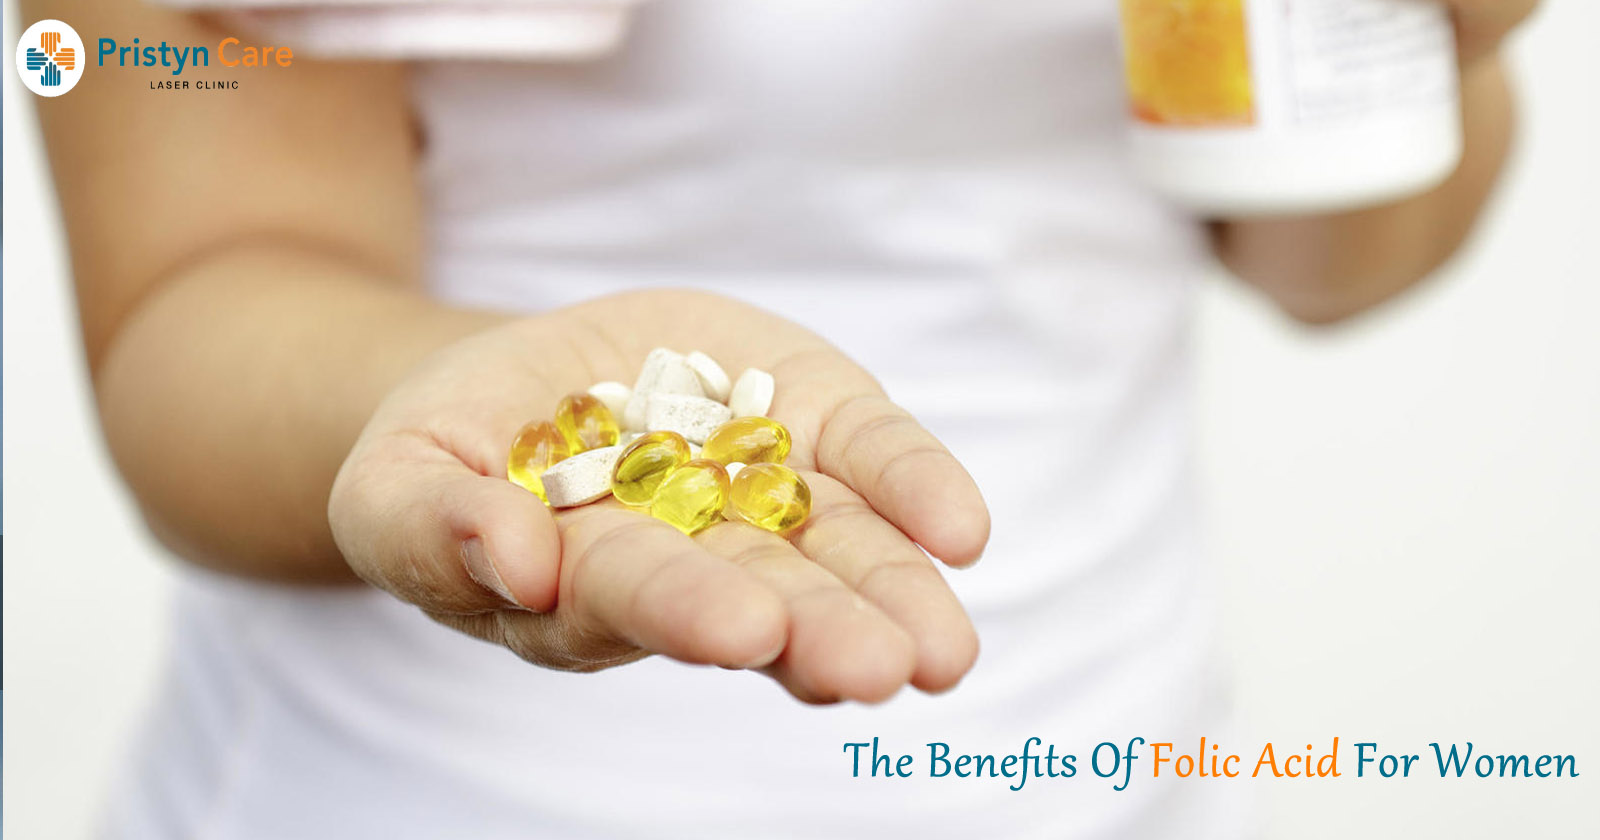 The benefits of folic acid for women